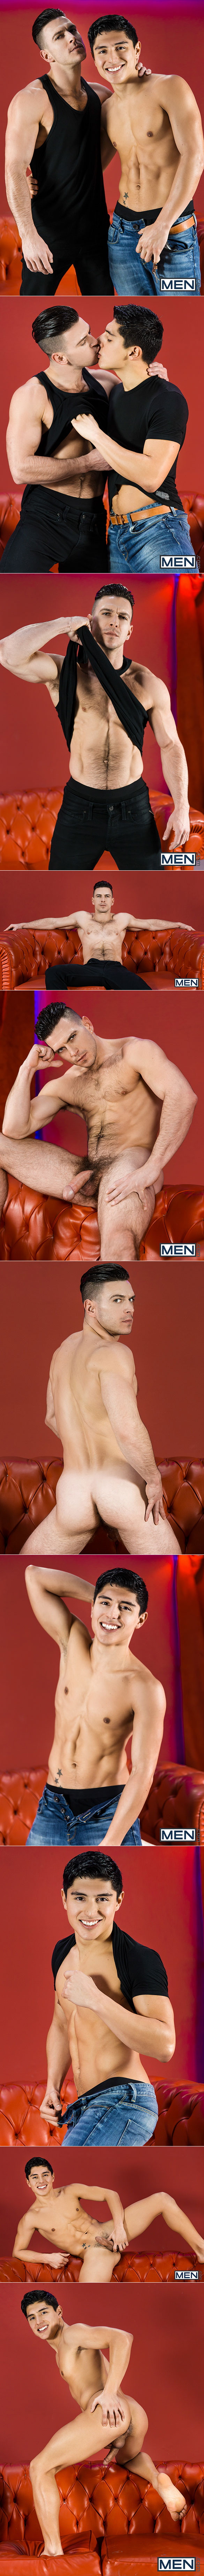 "Men.com: Ken Summers gets fucked by Paddy O'Brian and his thick cock in ""Satisfied"""